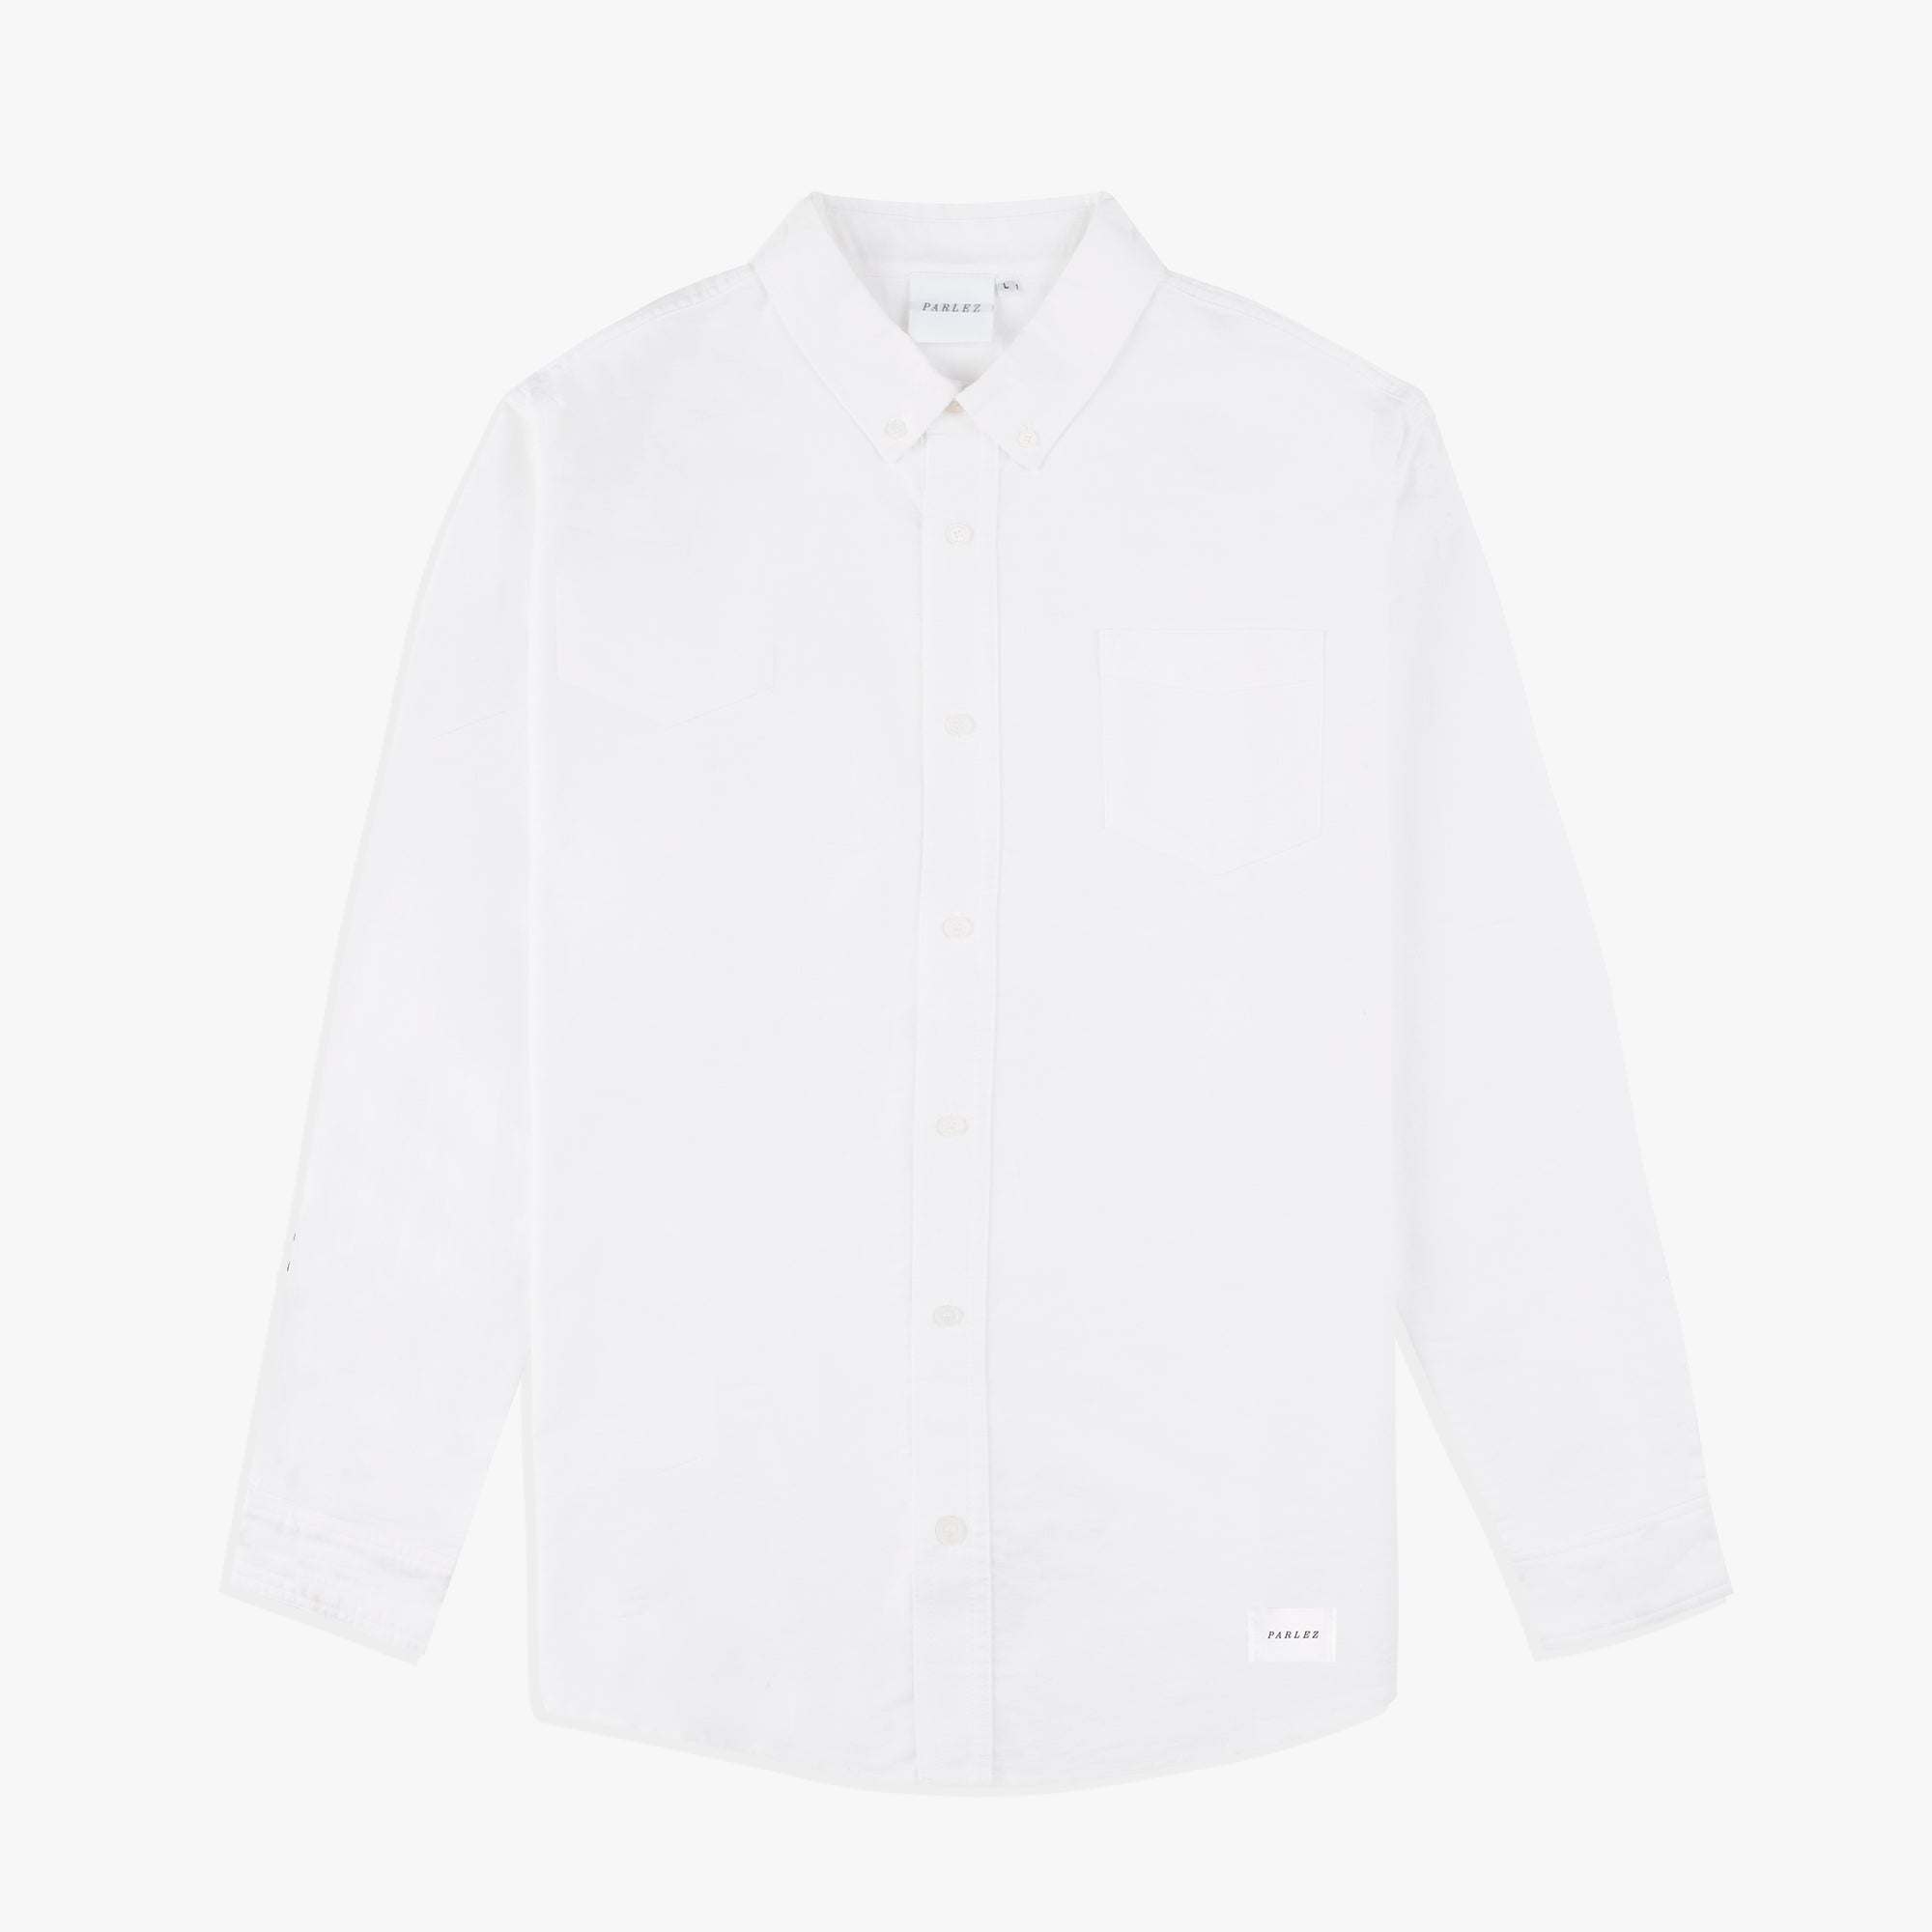 Parlez Sloop Long Sleeve Shirt White